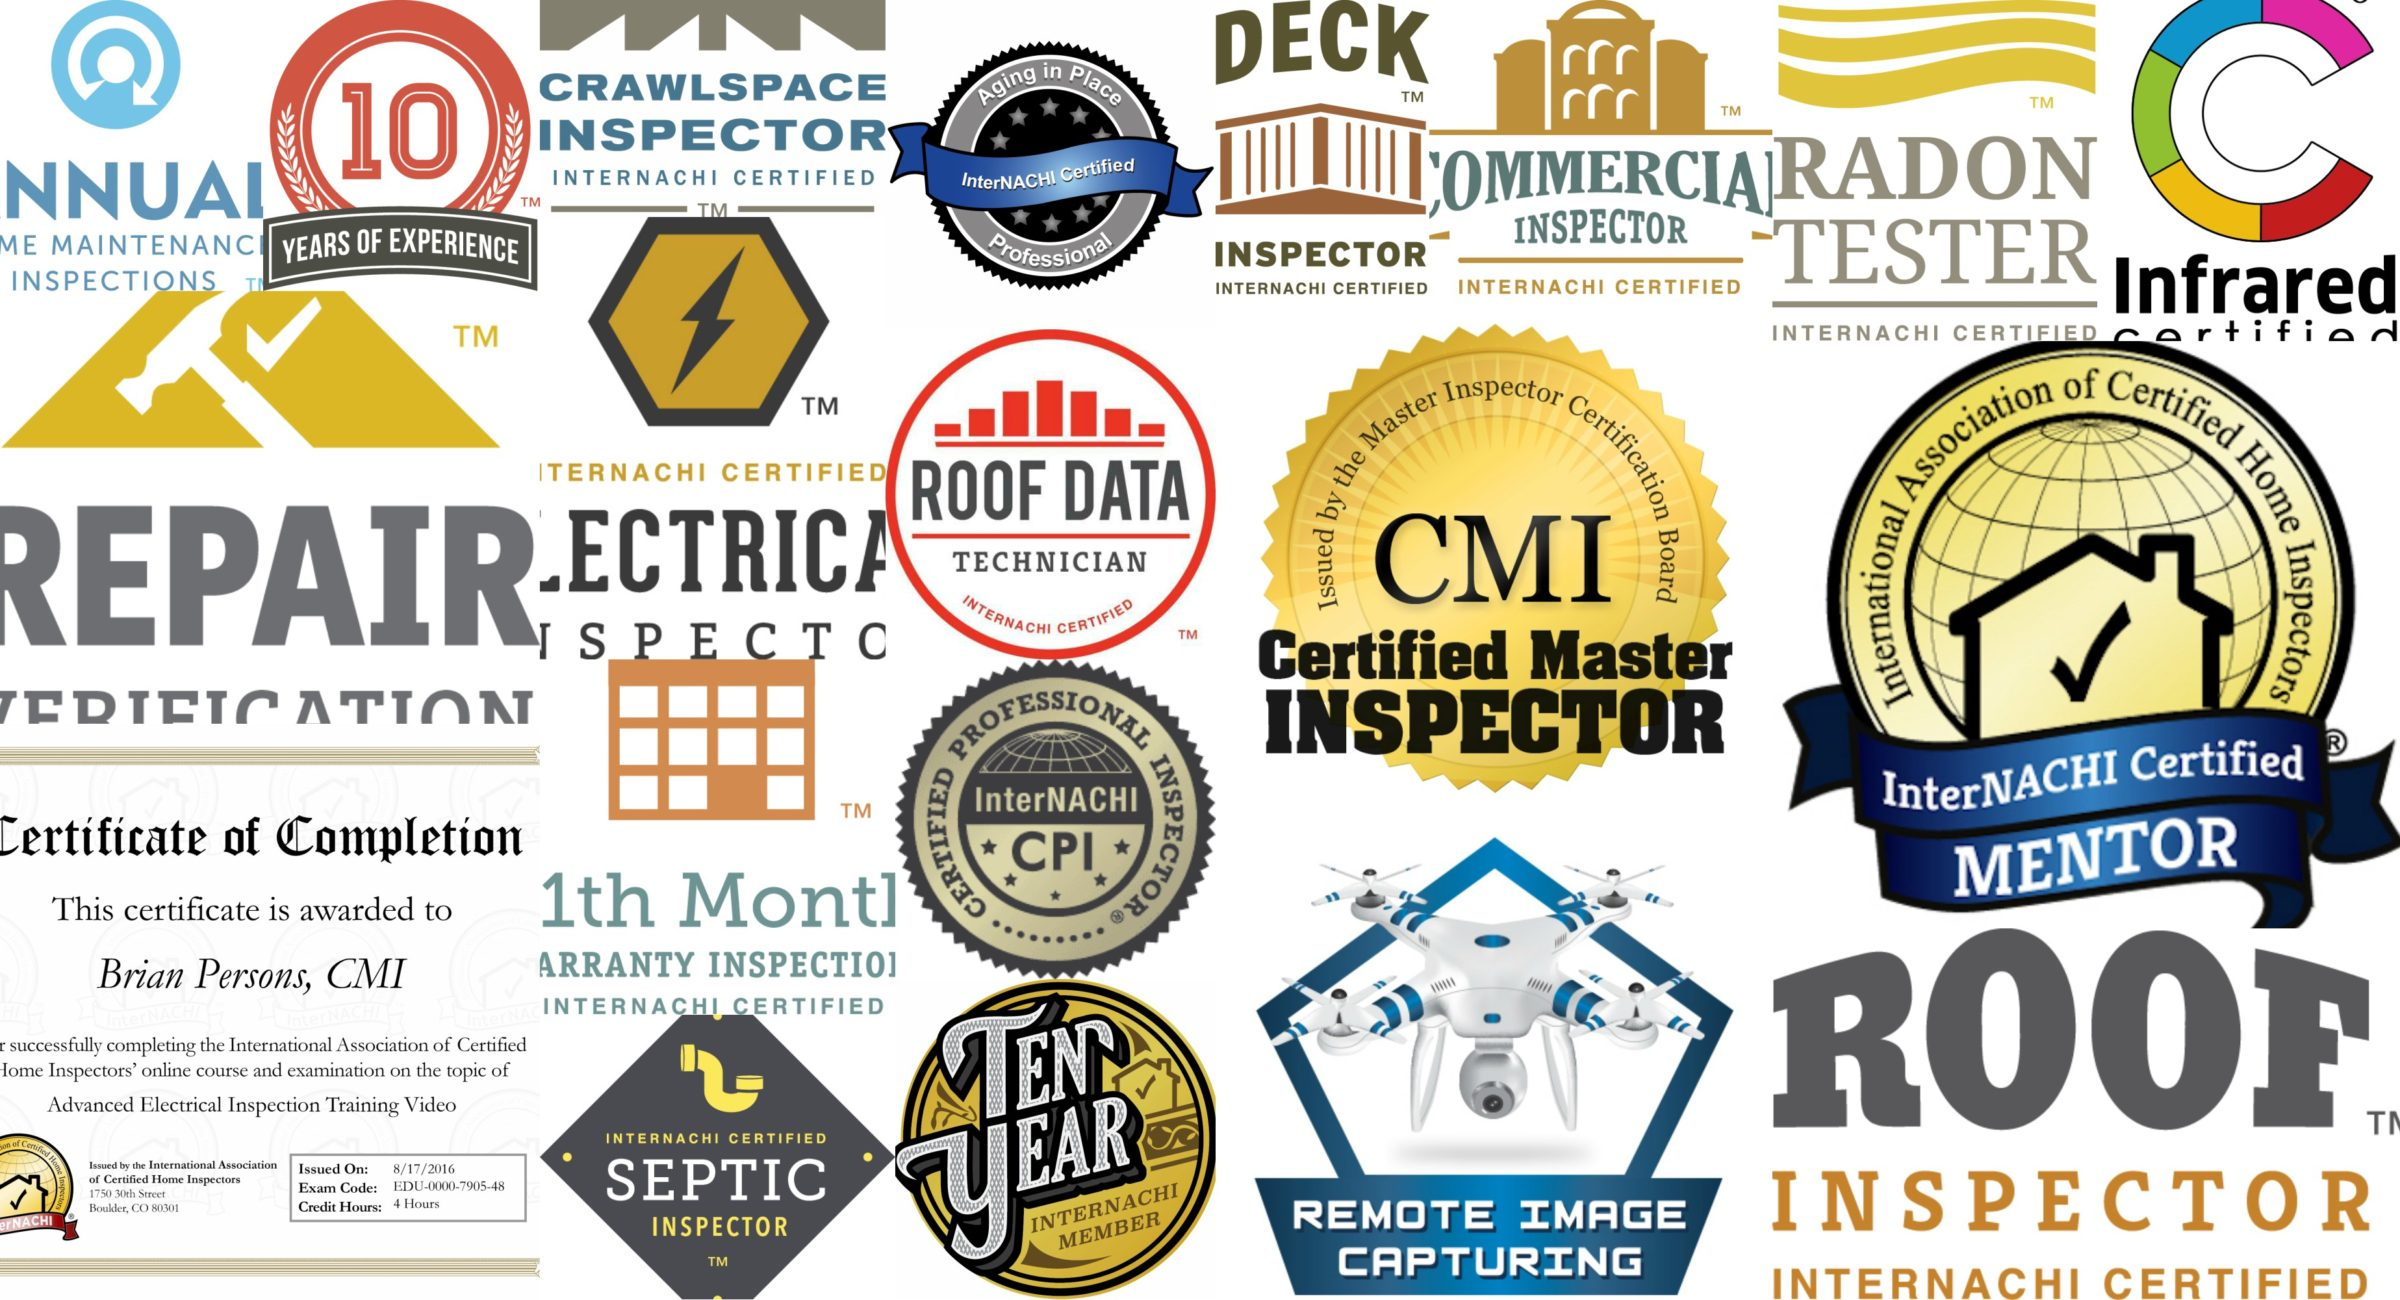 Brian Persons Front Range Home Inspections Ltd.